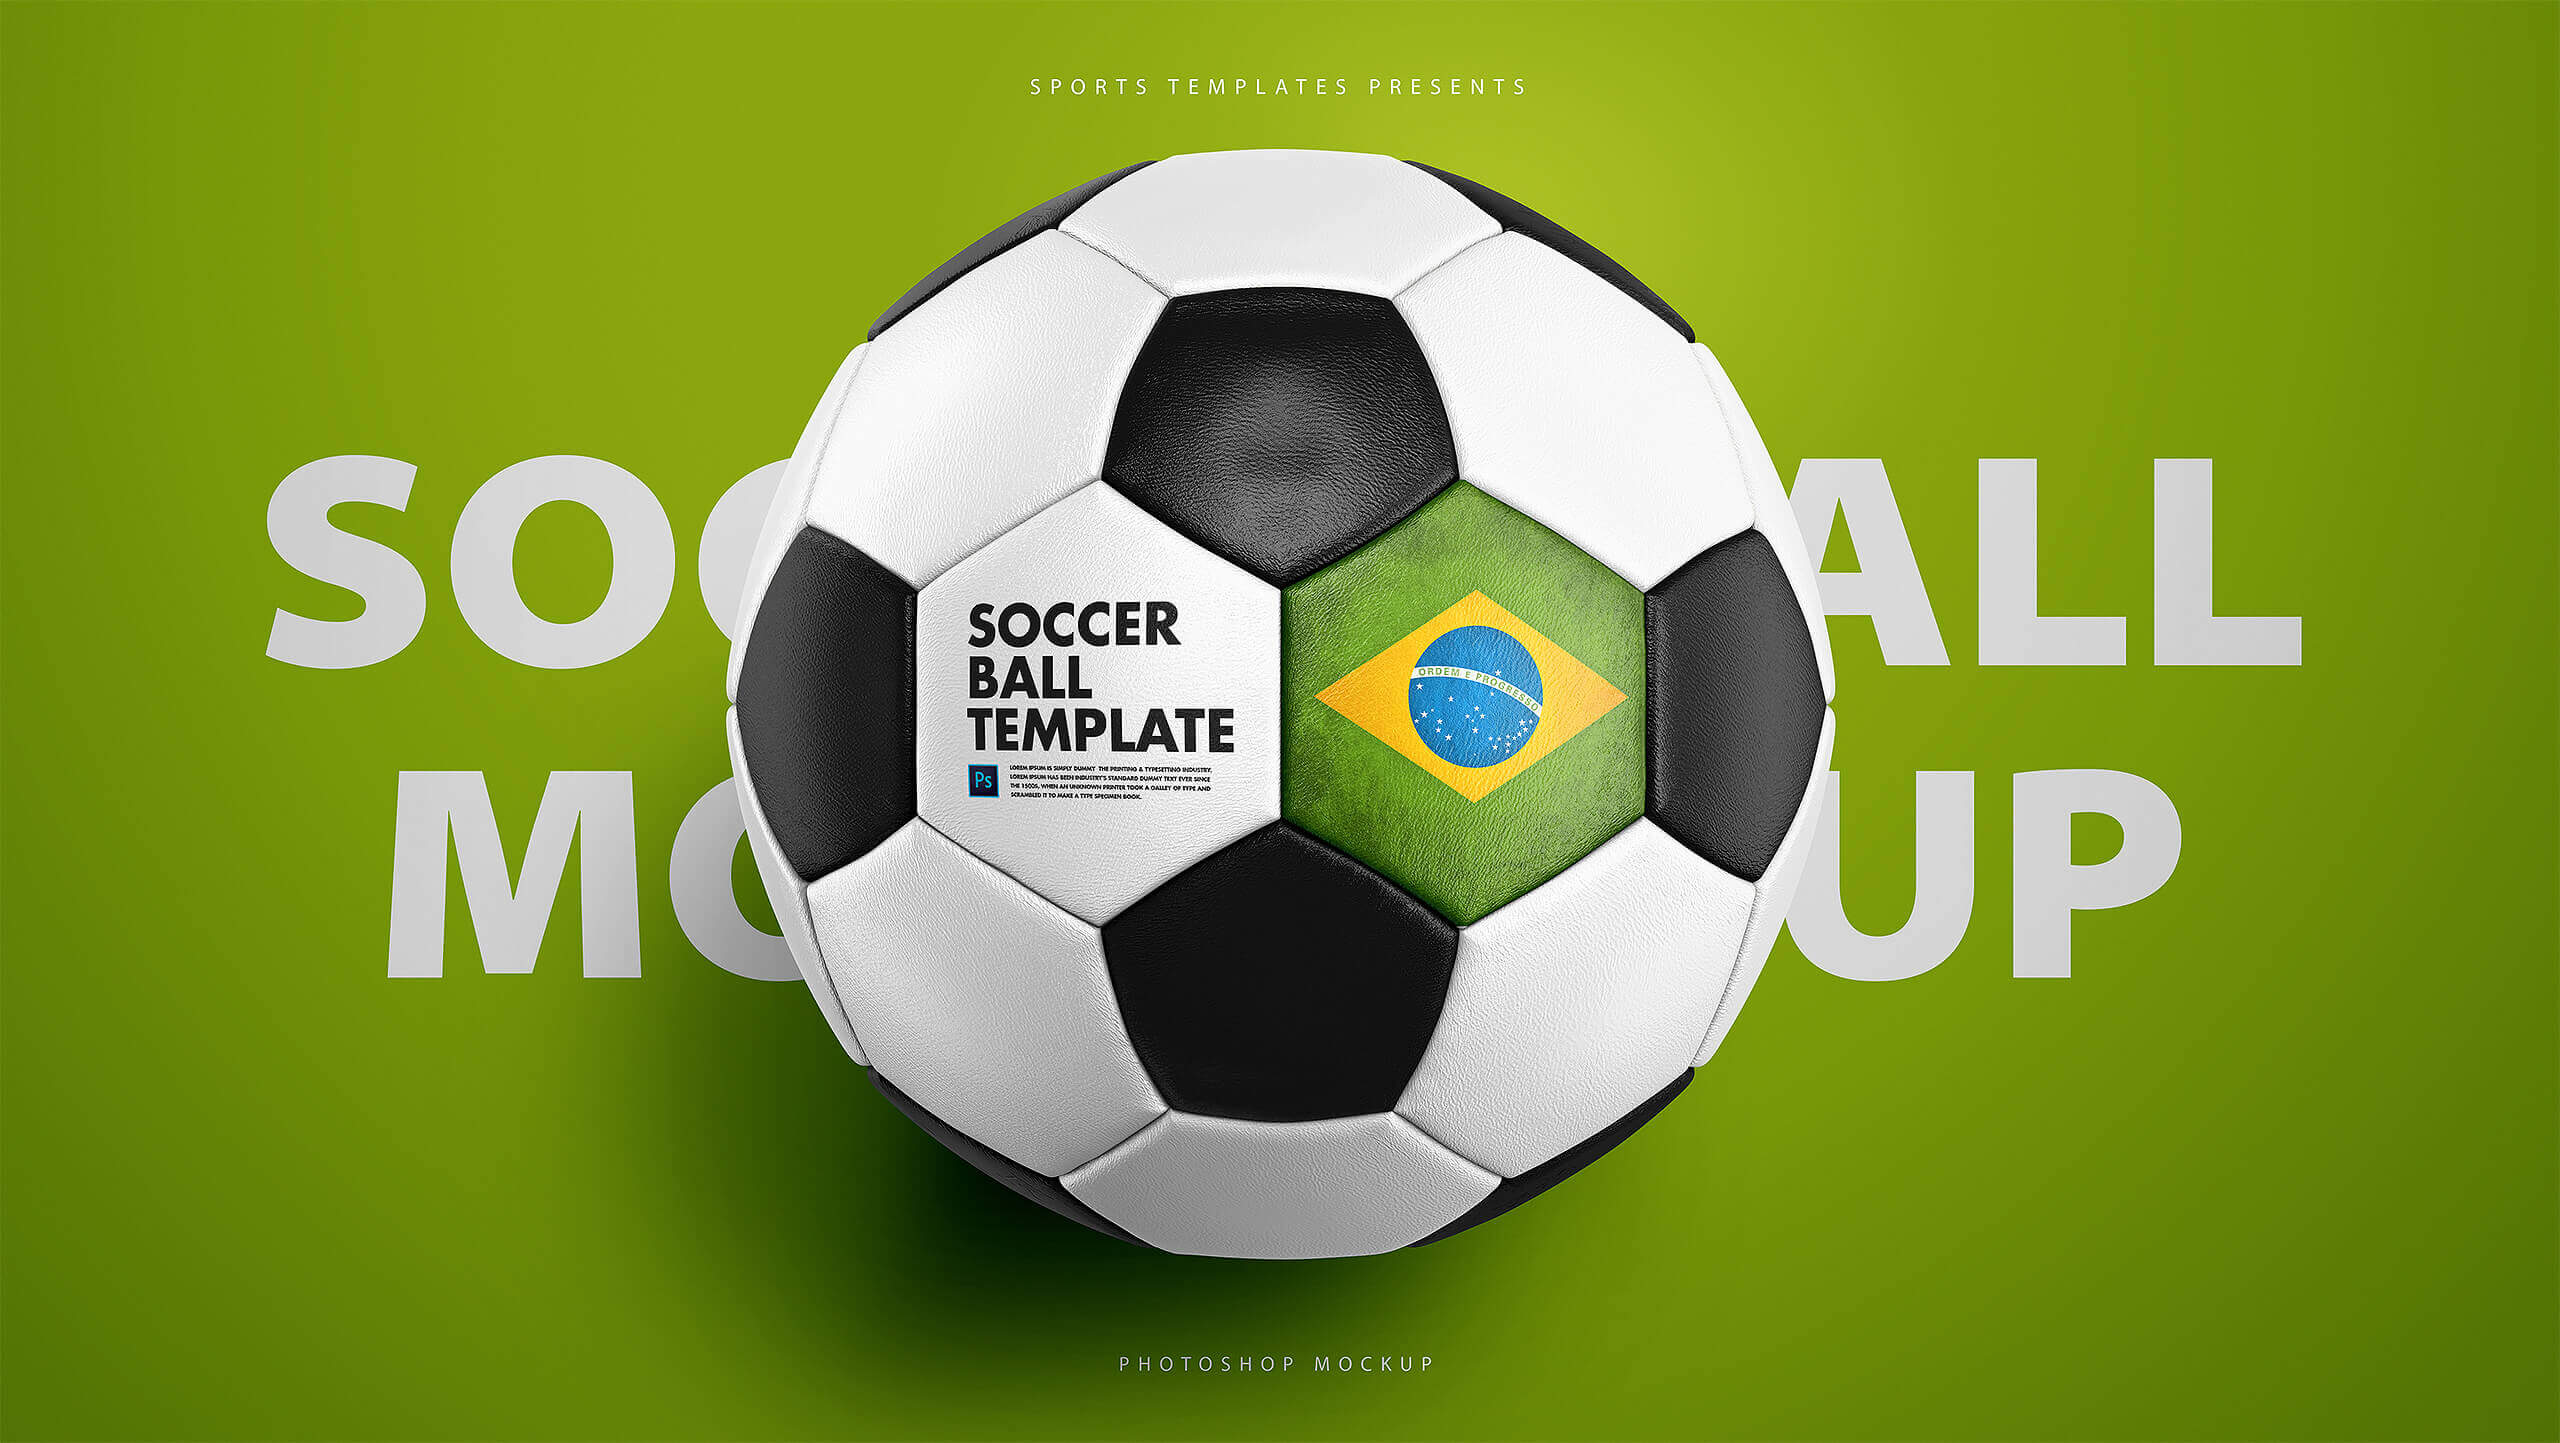 Soccer football ball photoshop template sports templates football soccer ball photoshop mockup maxwellsz